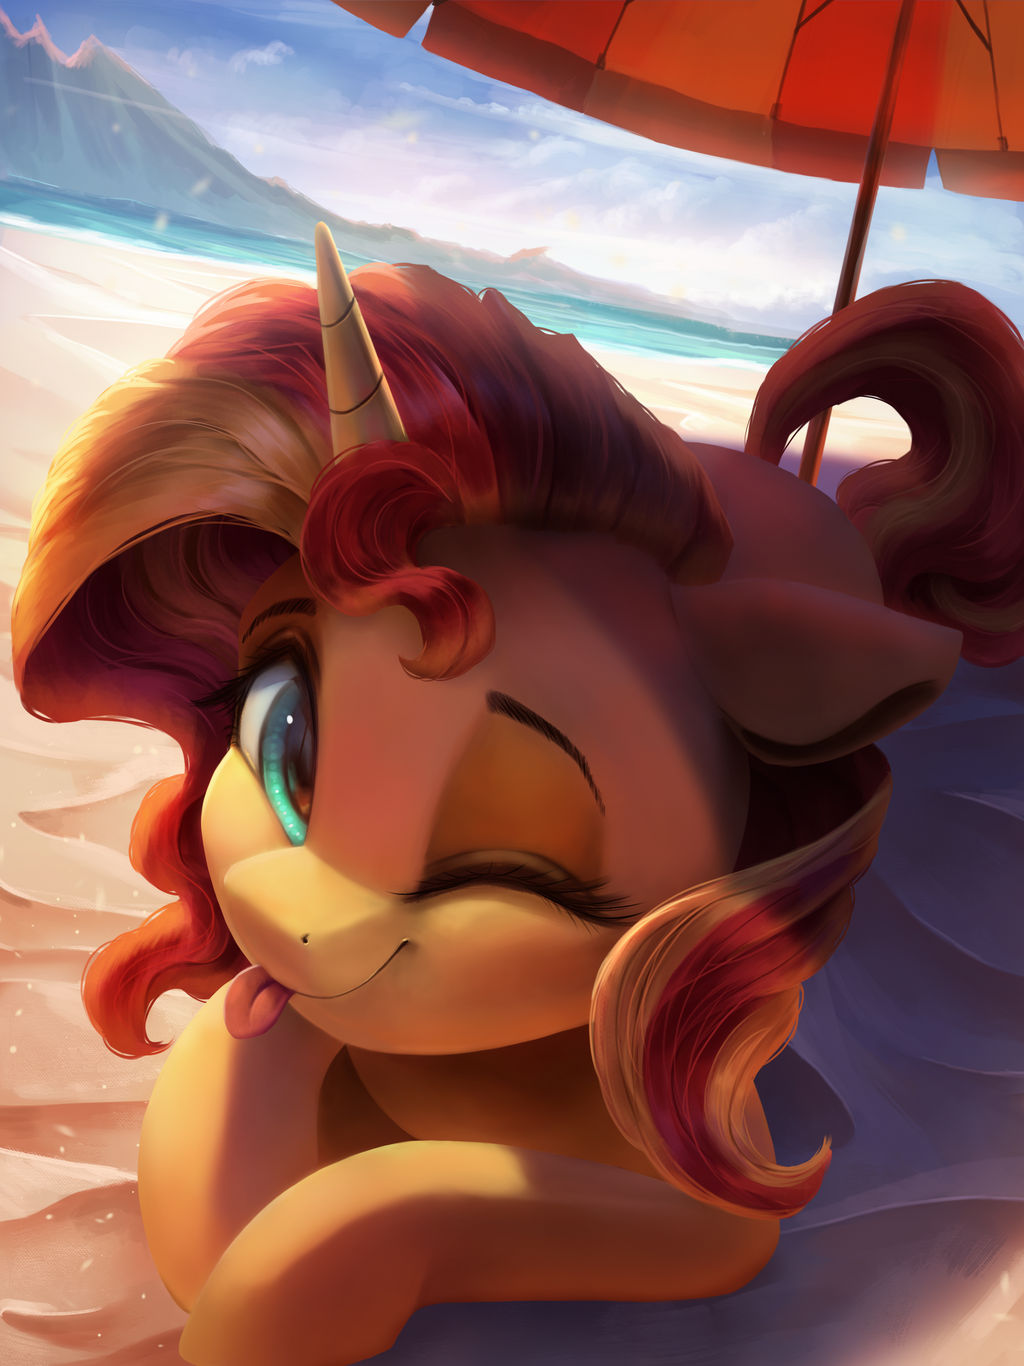 beach_day_by_vanillaghosties_dczdvfg-ful